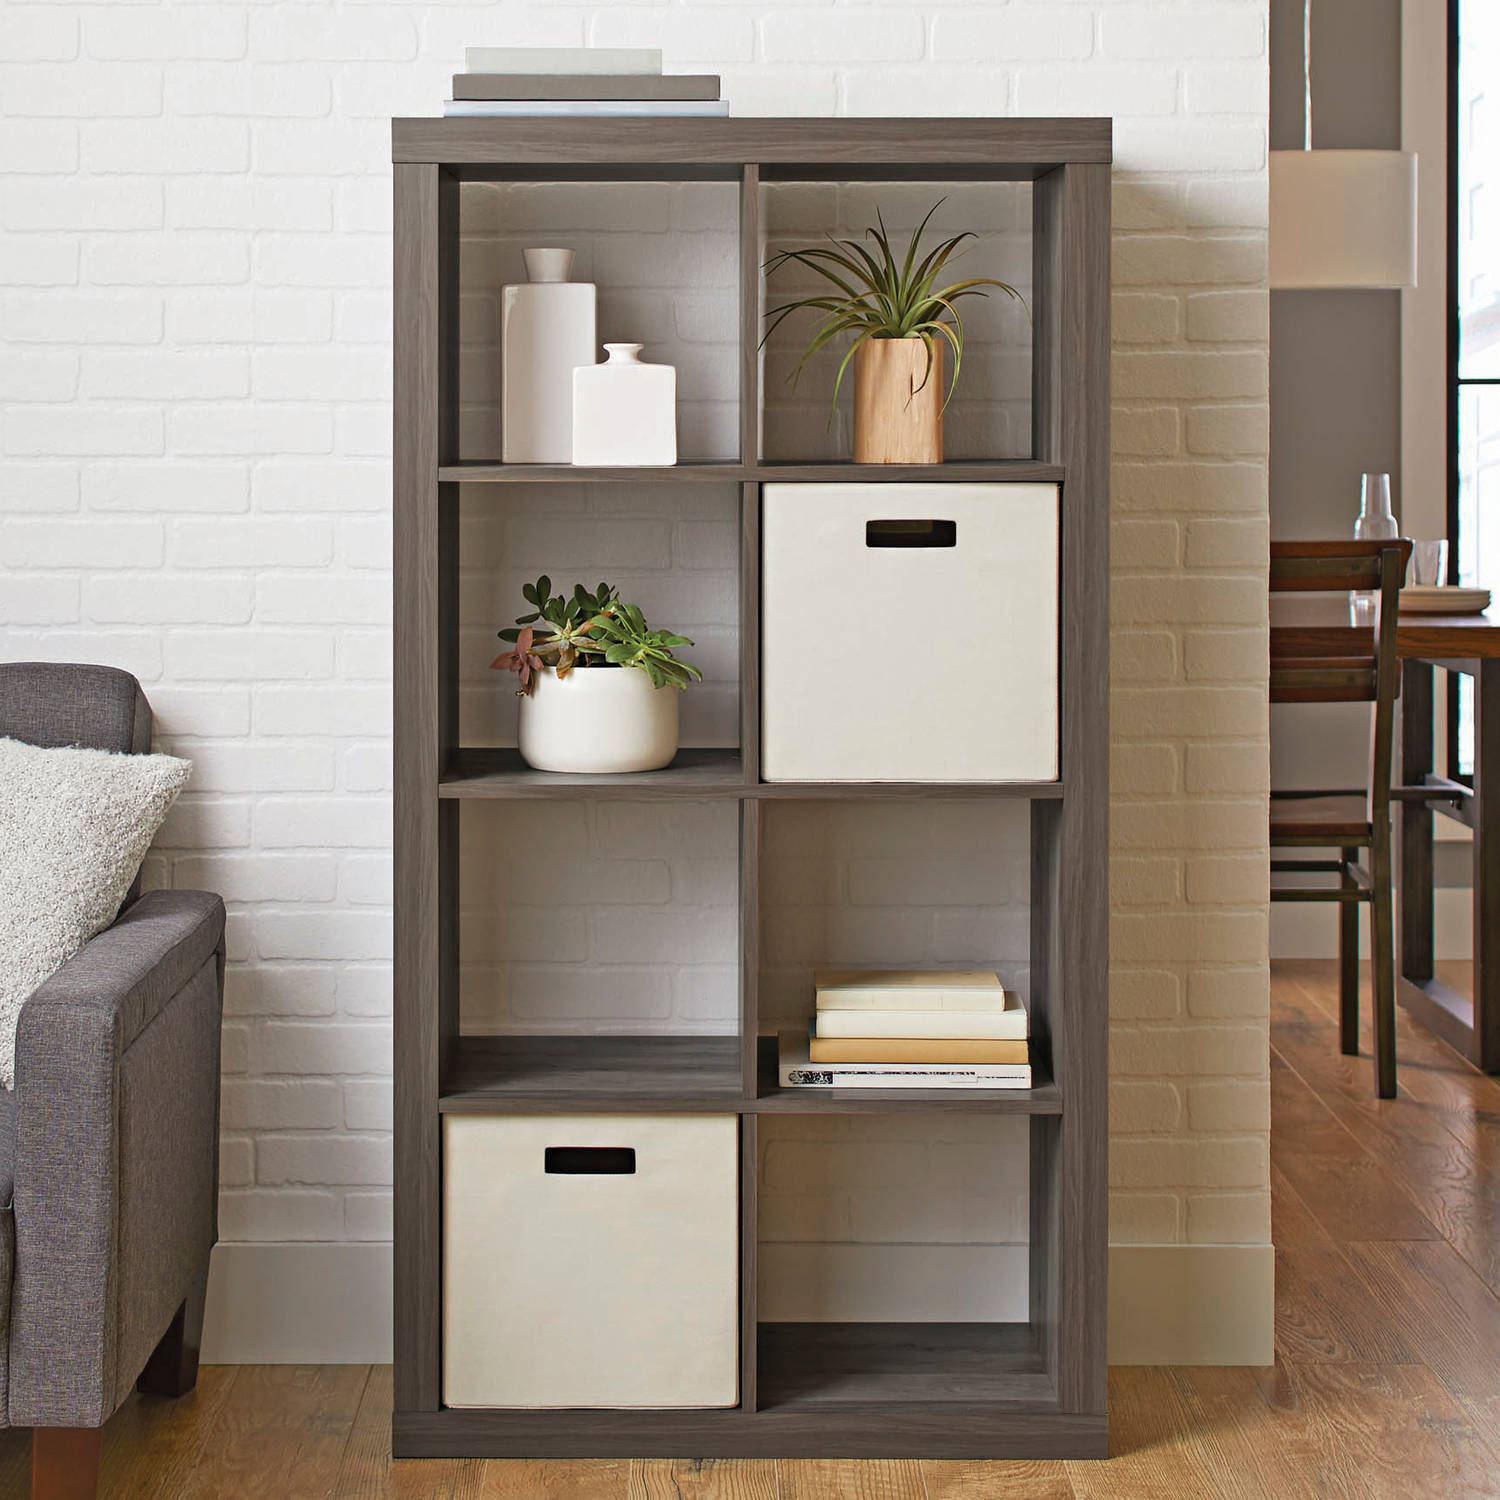 Better Homes and Gardens 8 Cube Storage, Rustic Grey Finish